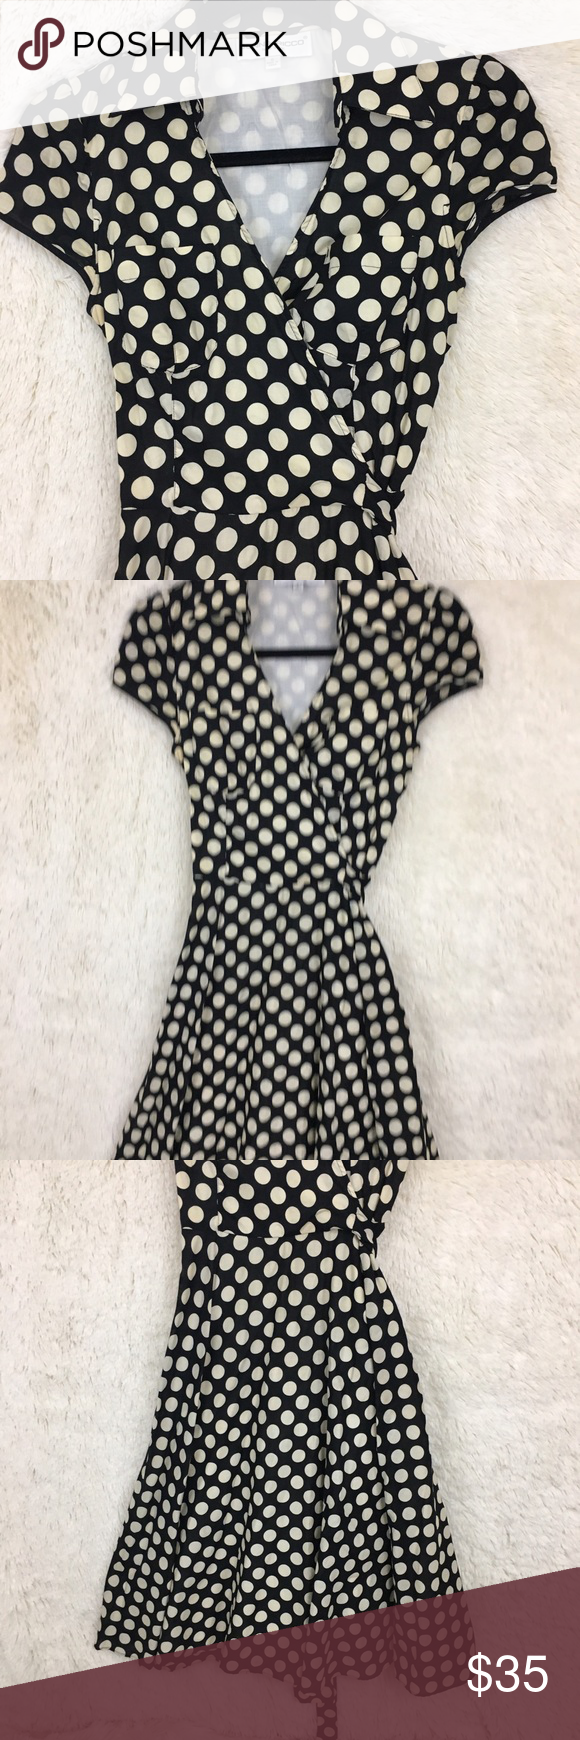 Donna ricco polka dot dress cap duagde keys and dots